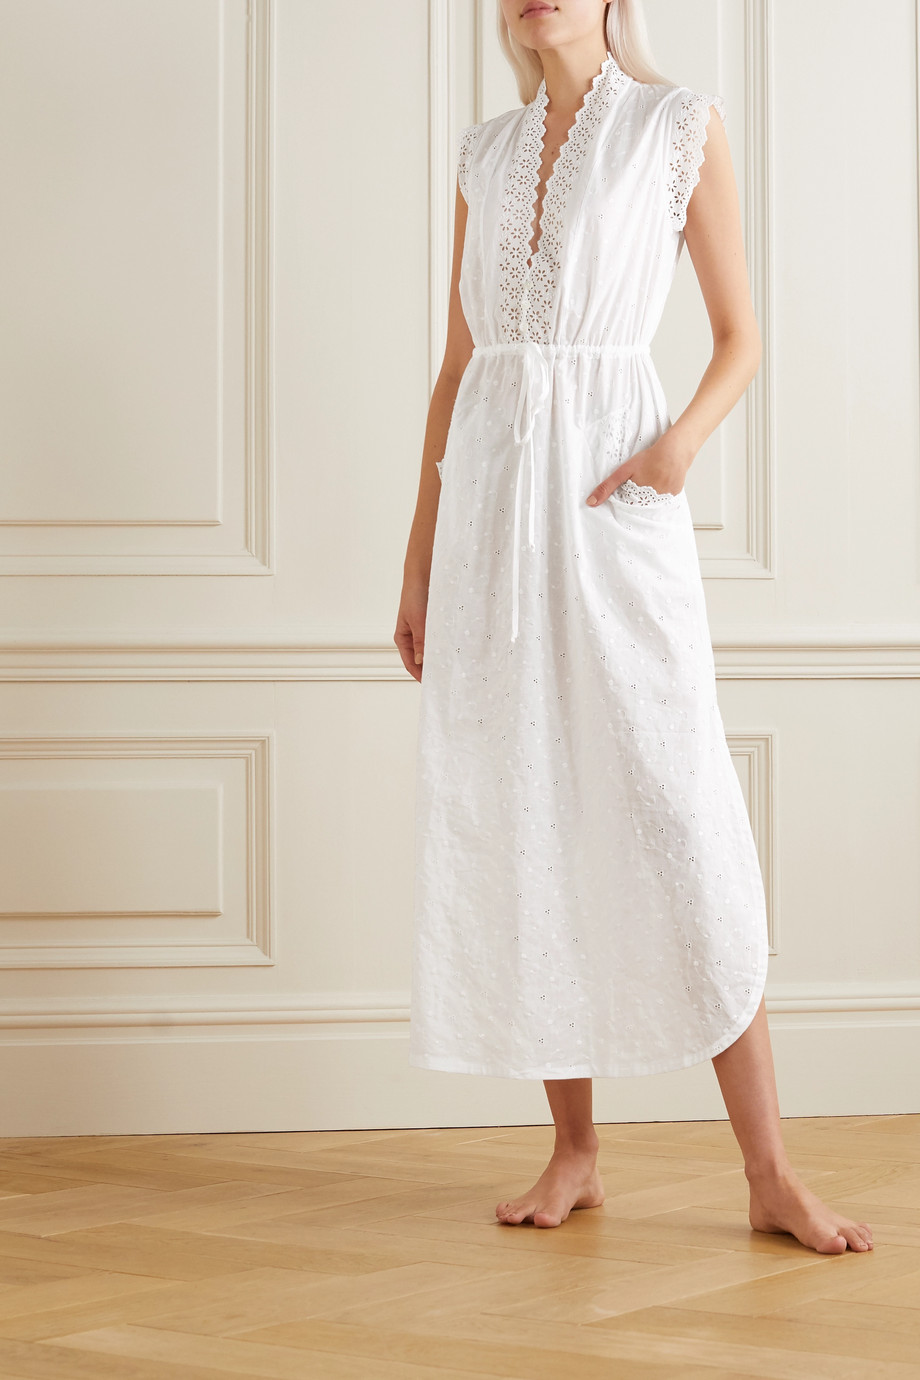 Loretta Caponi Gina lace-trimmed embroidered cotton maxi nightdress